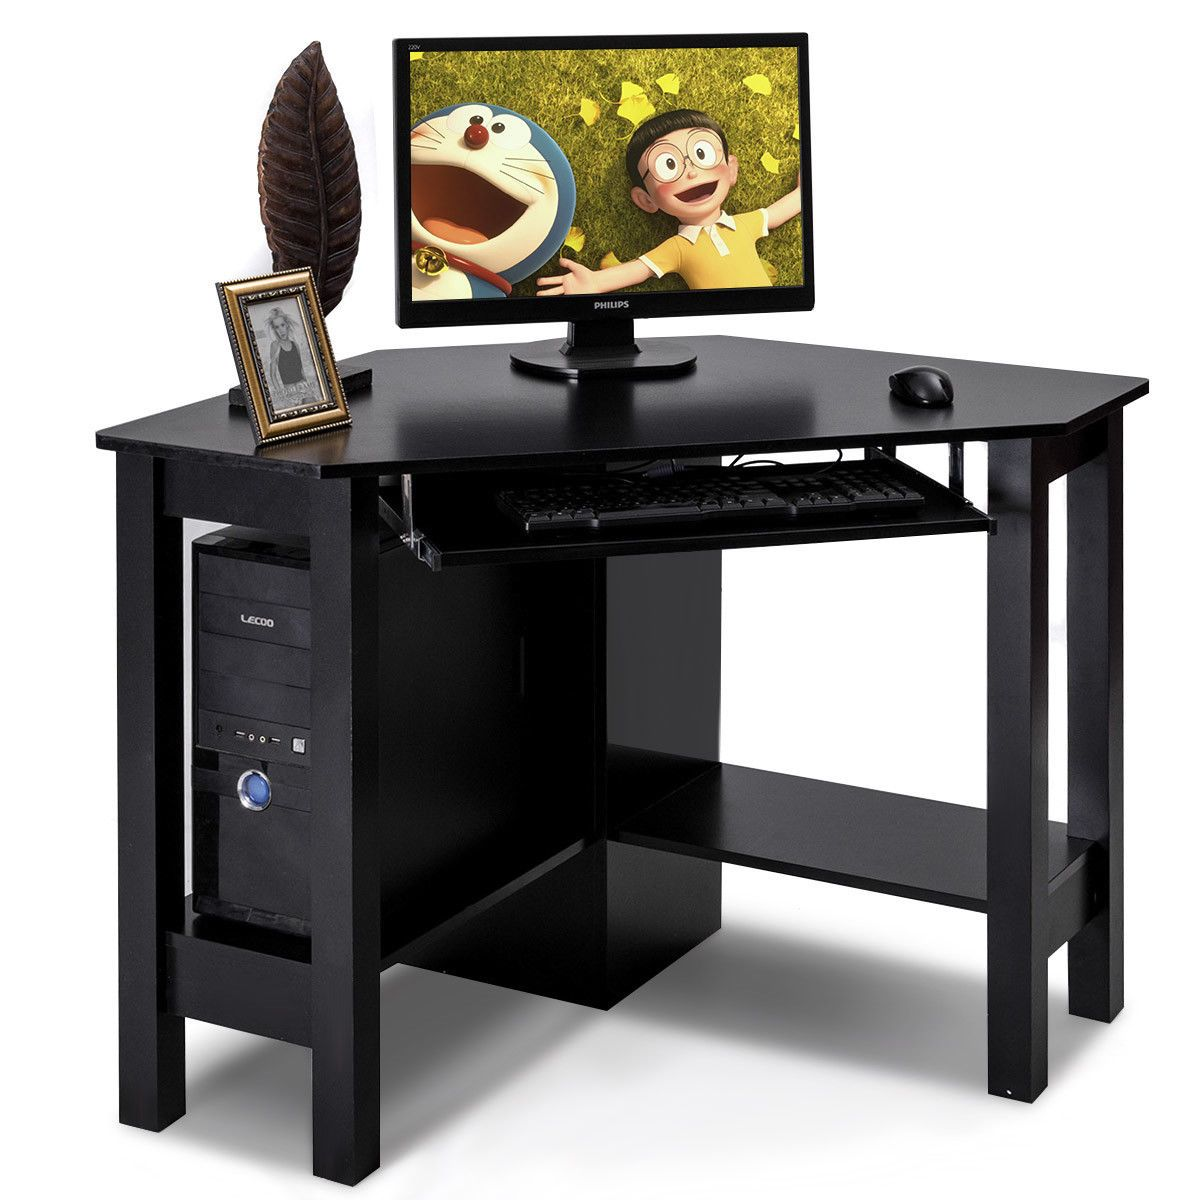 Costway Wooden Corner Desk With Drawer Computer PC Table Study